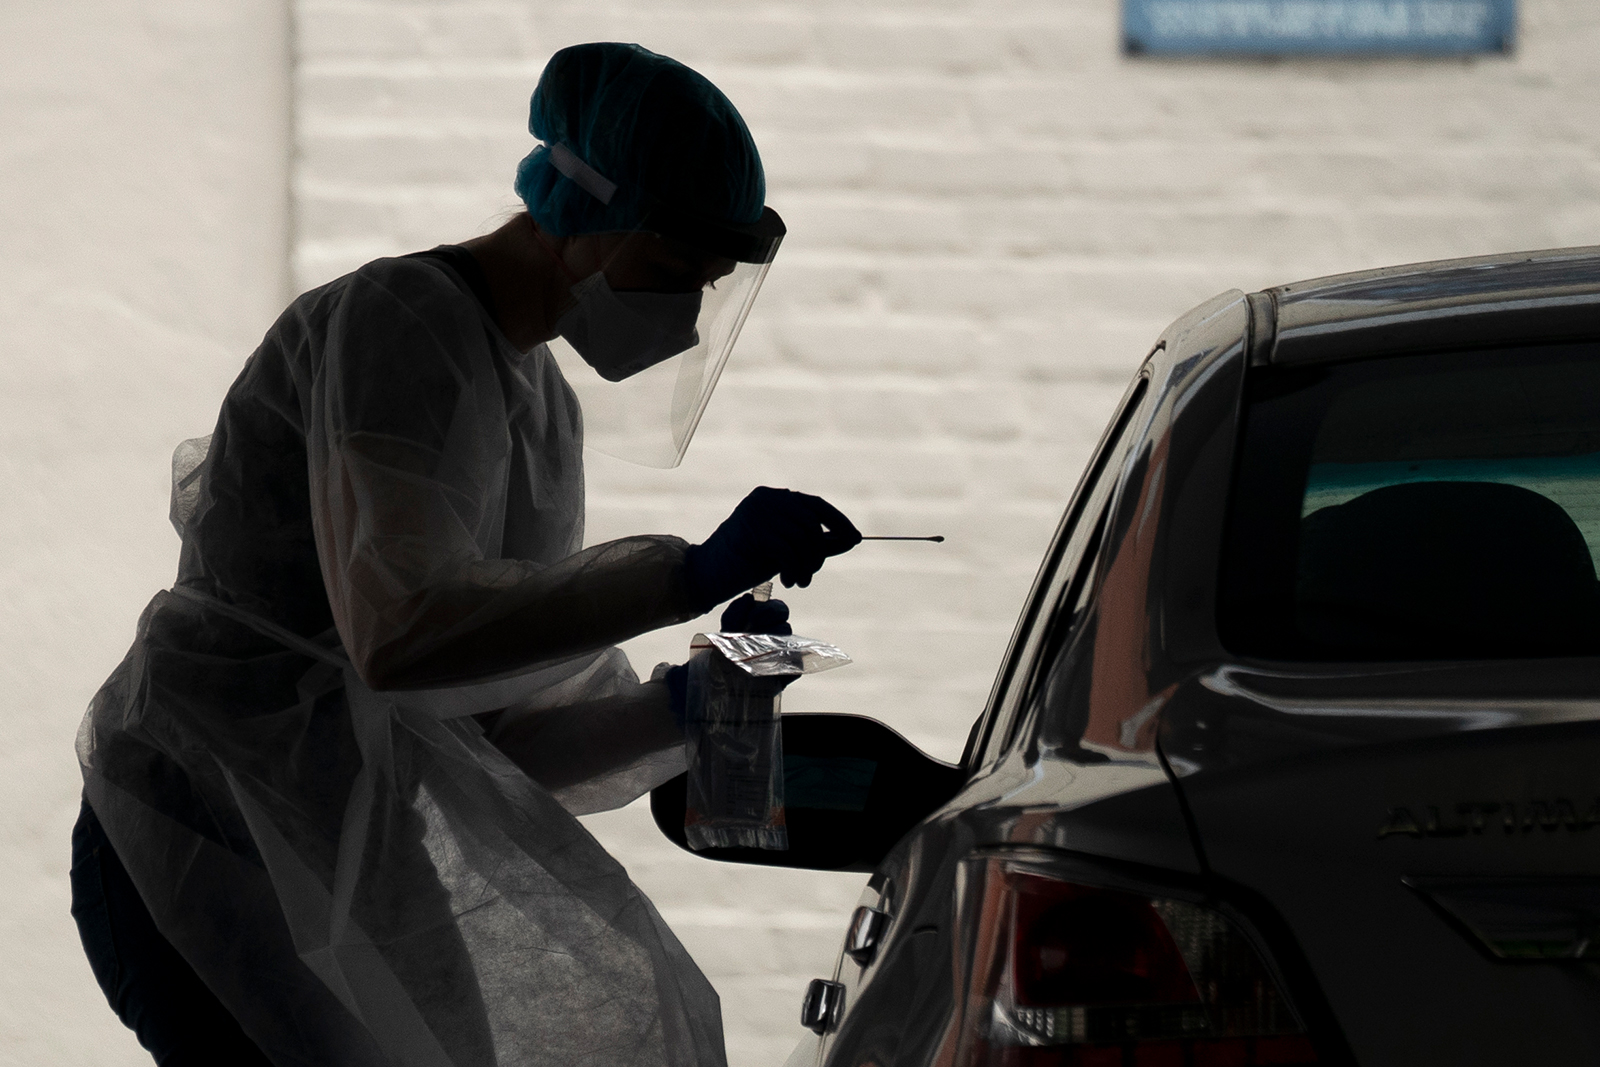 A healthcare worker administers a coronavirus test at a drive-thru testing site run by George Washington University Hospital in Washington, DC on May 26.